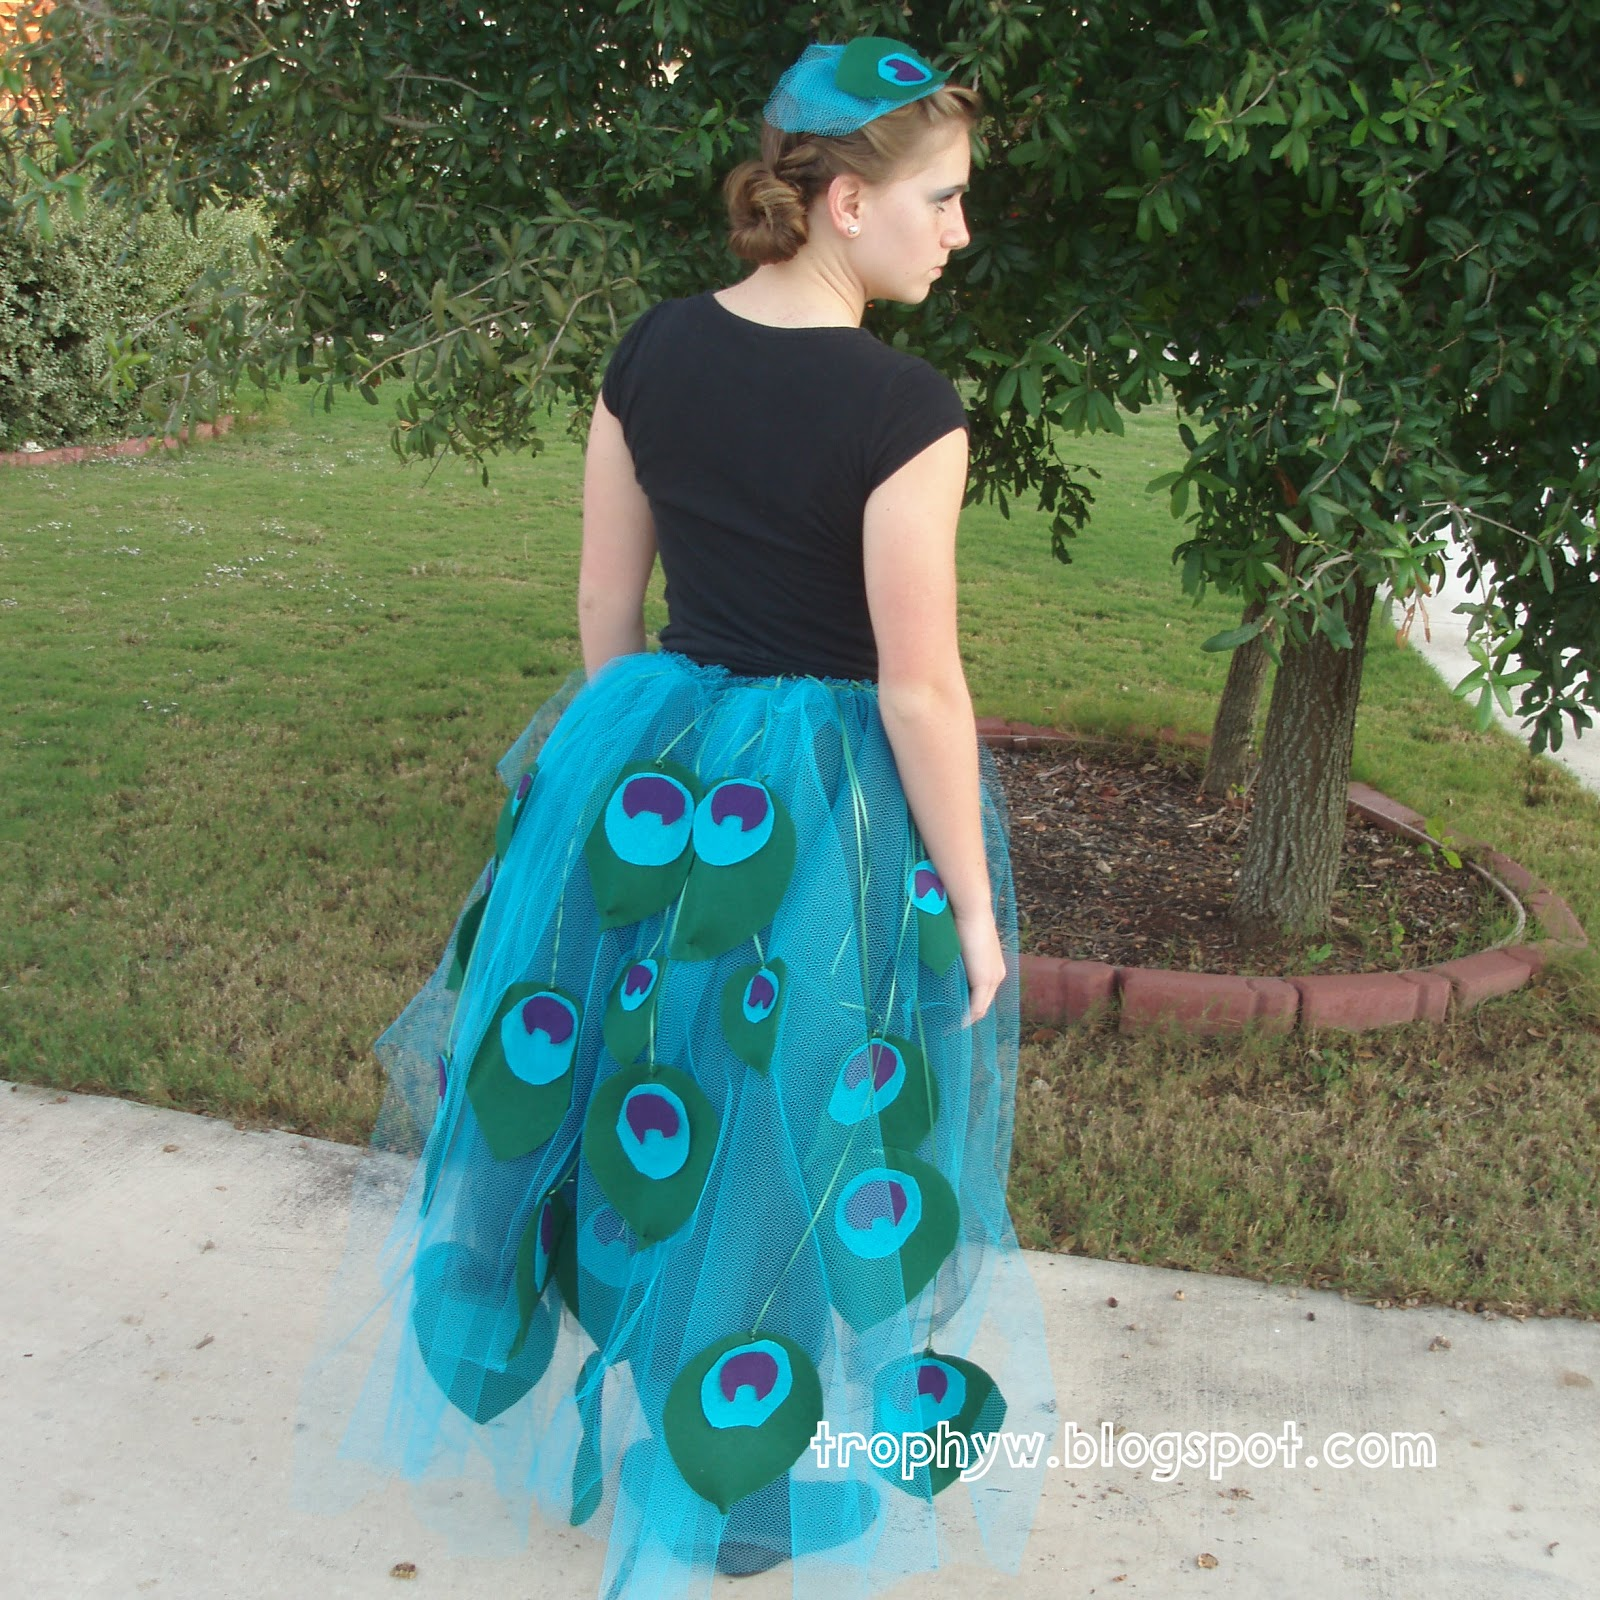 tales of a trophy wife: let's make a deal! peacock costume